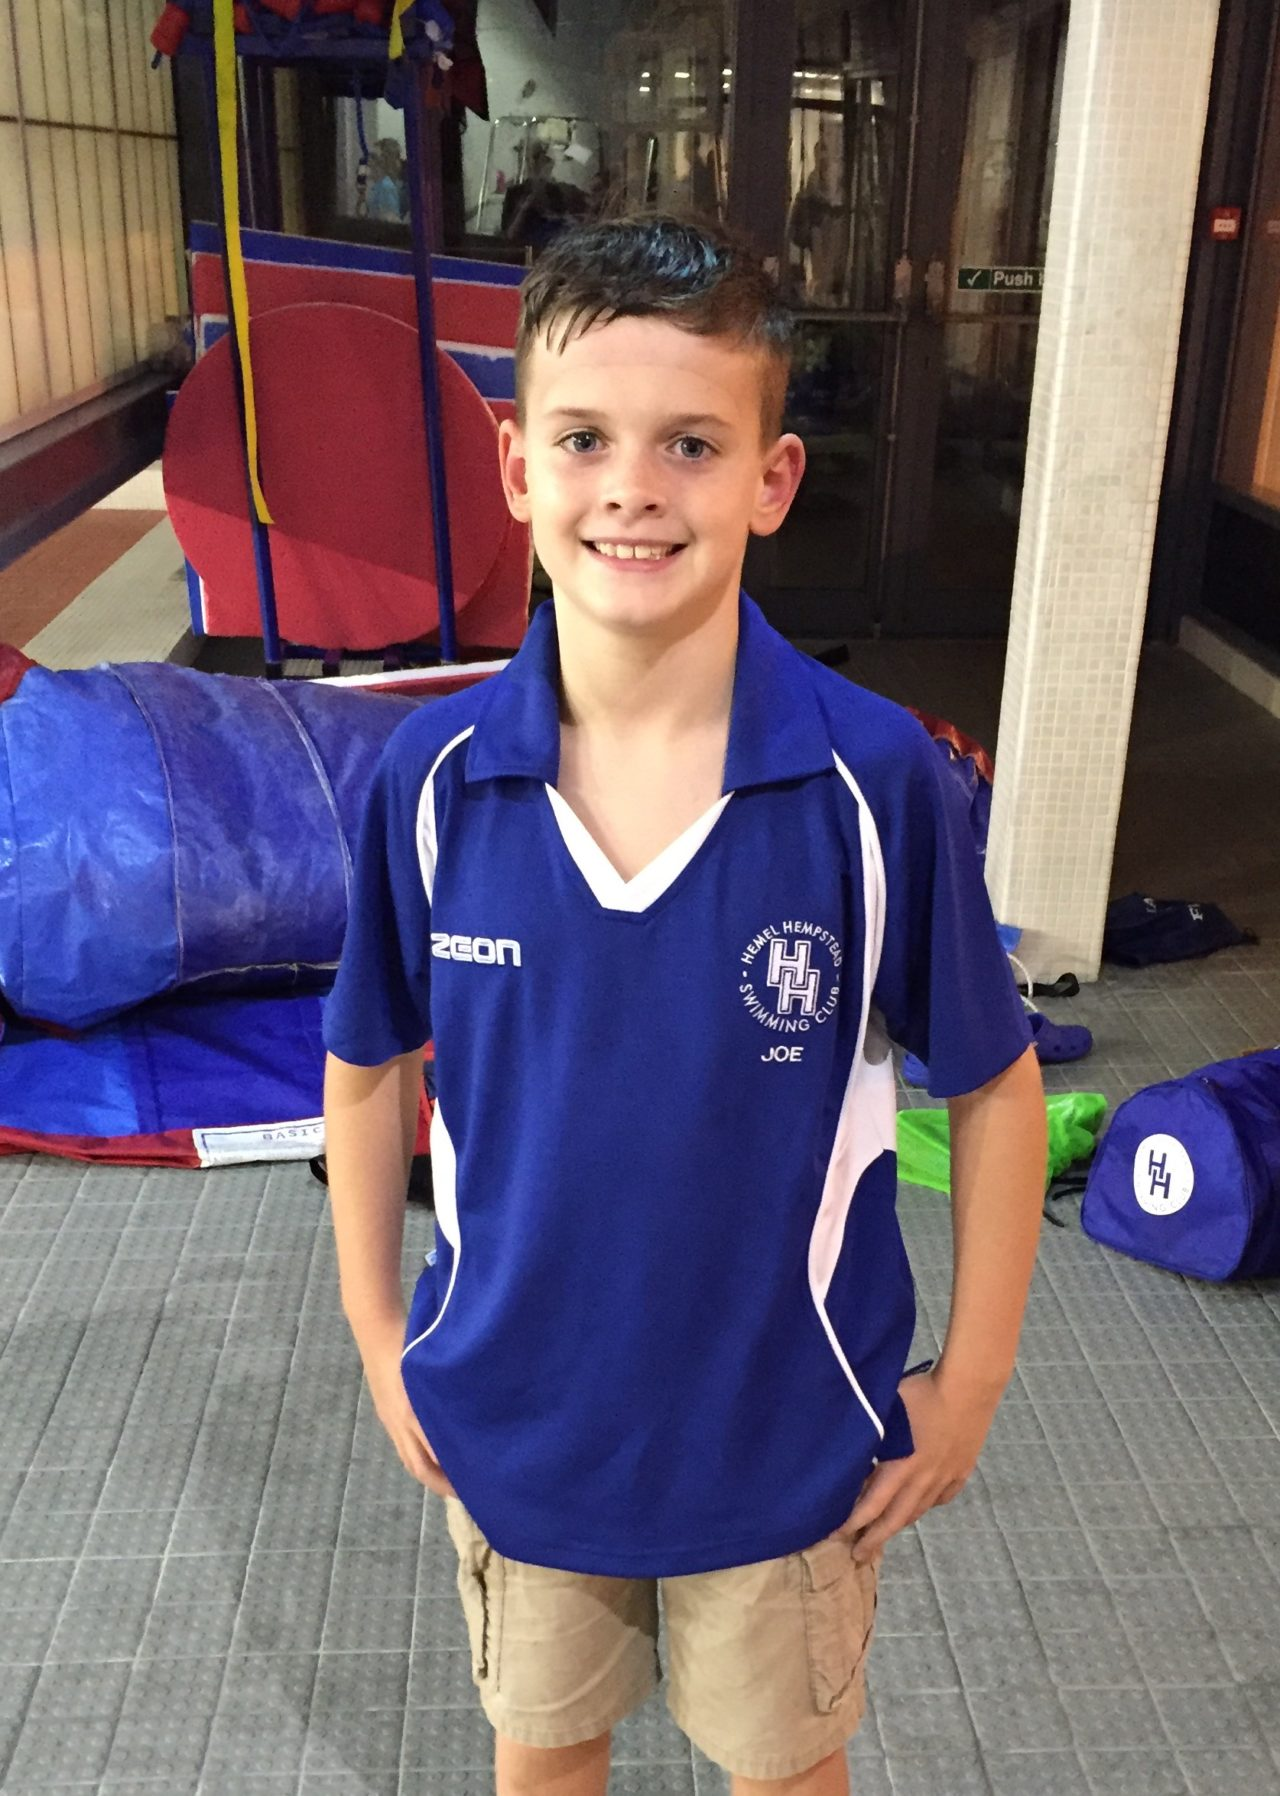 https://hhsc.org.uk/wp-content/uploads/2016/10/swimmer-of-the-month-september-2016-boy-1280x1796.jpg